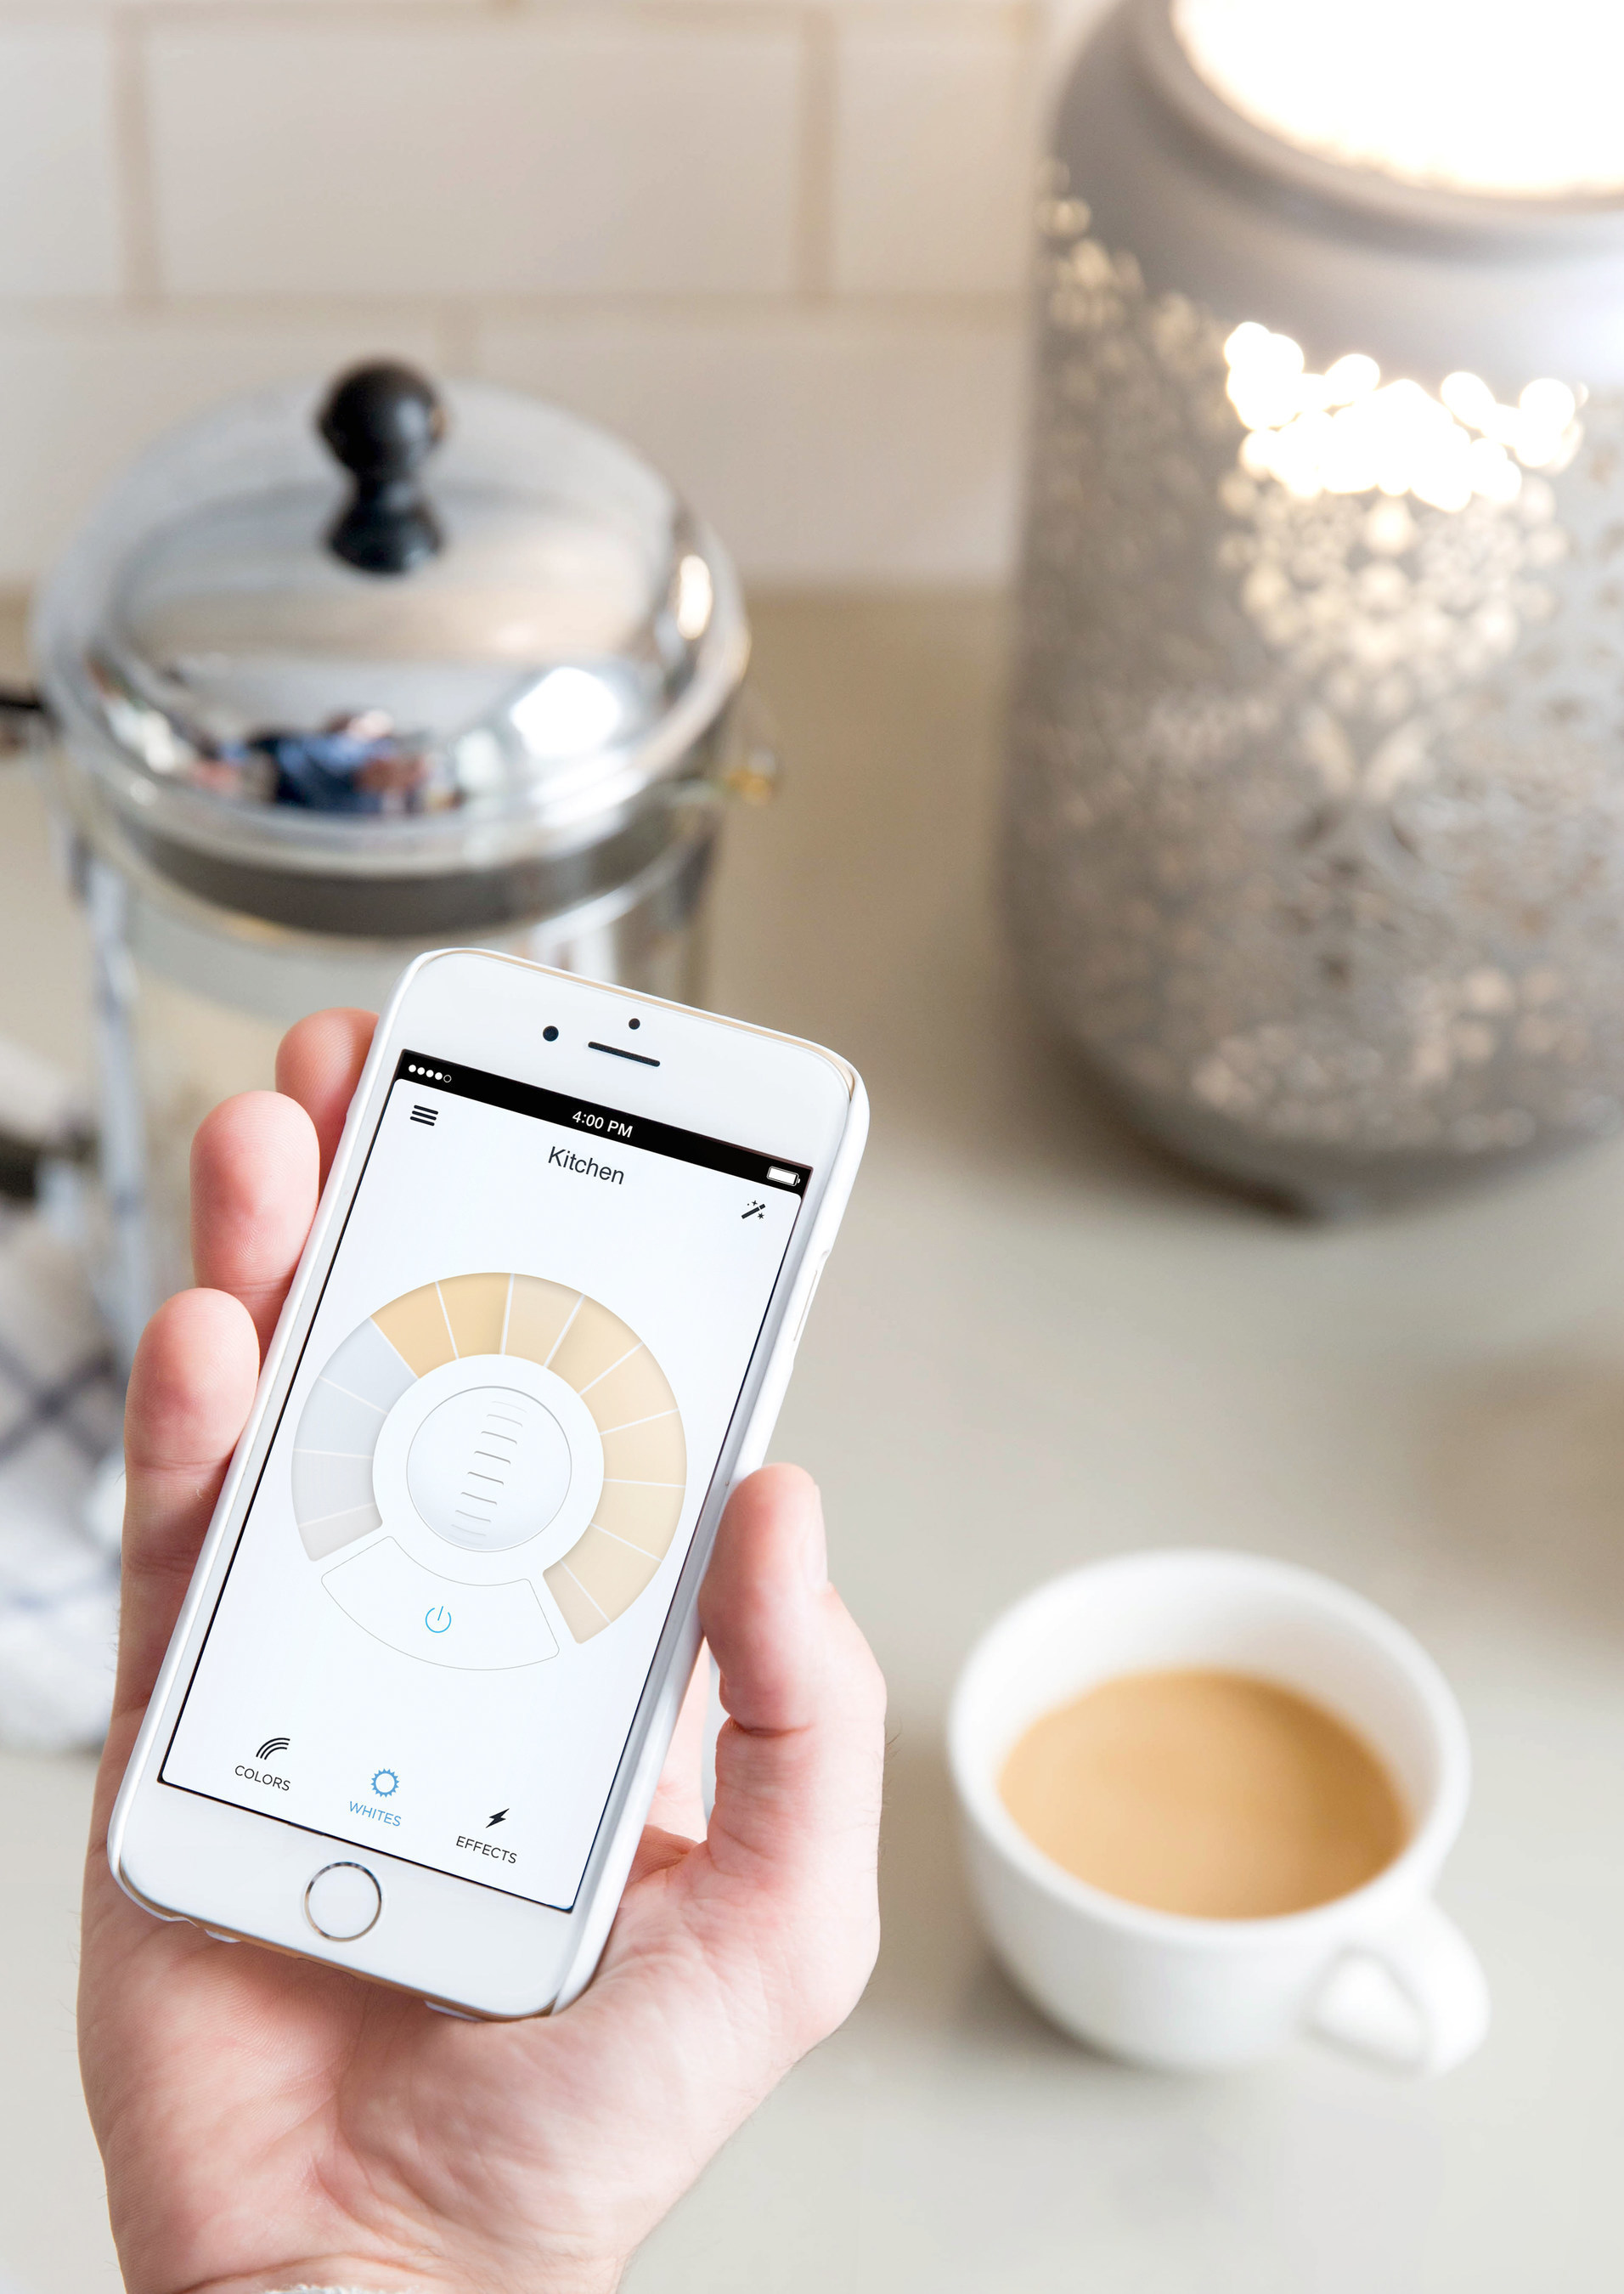 LIFX Releases Their Most Affordable Smart Light Yet